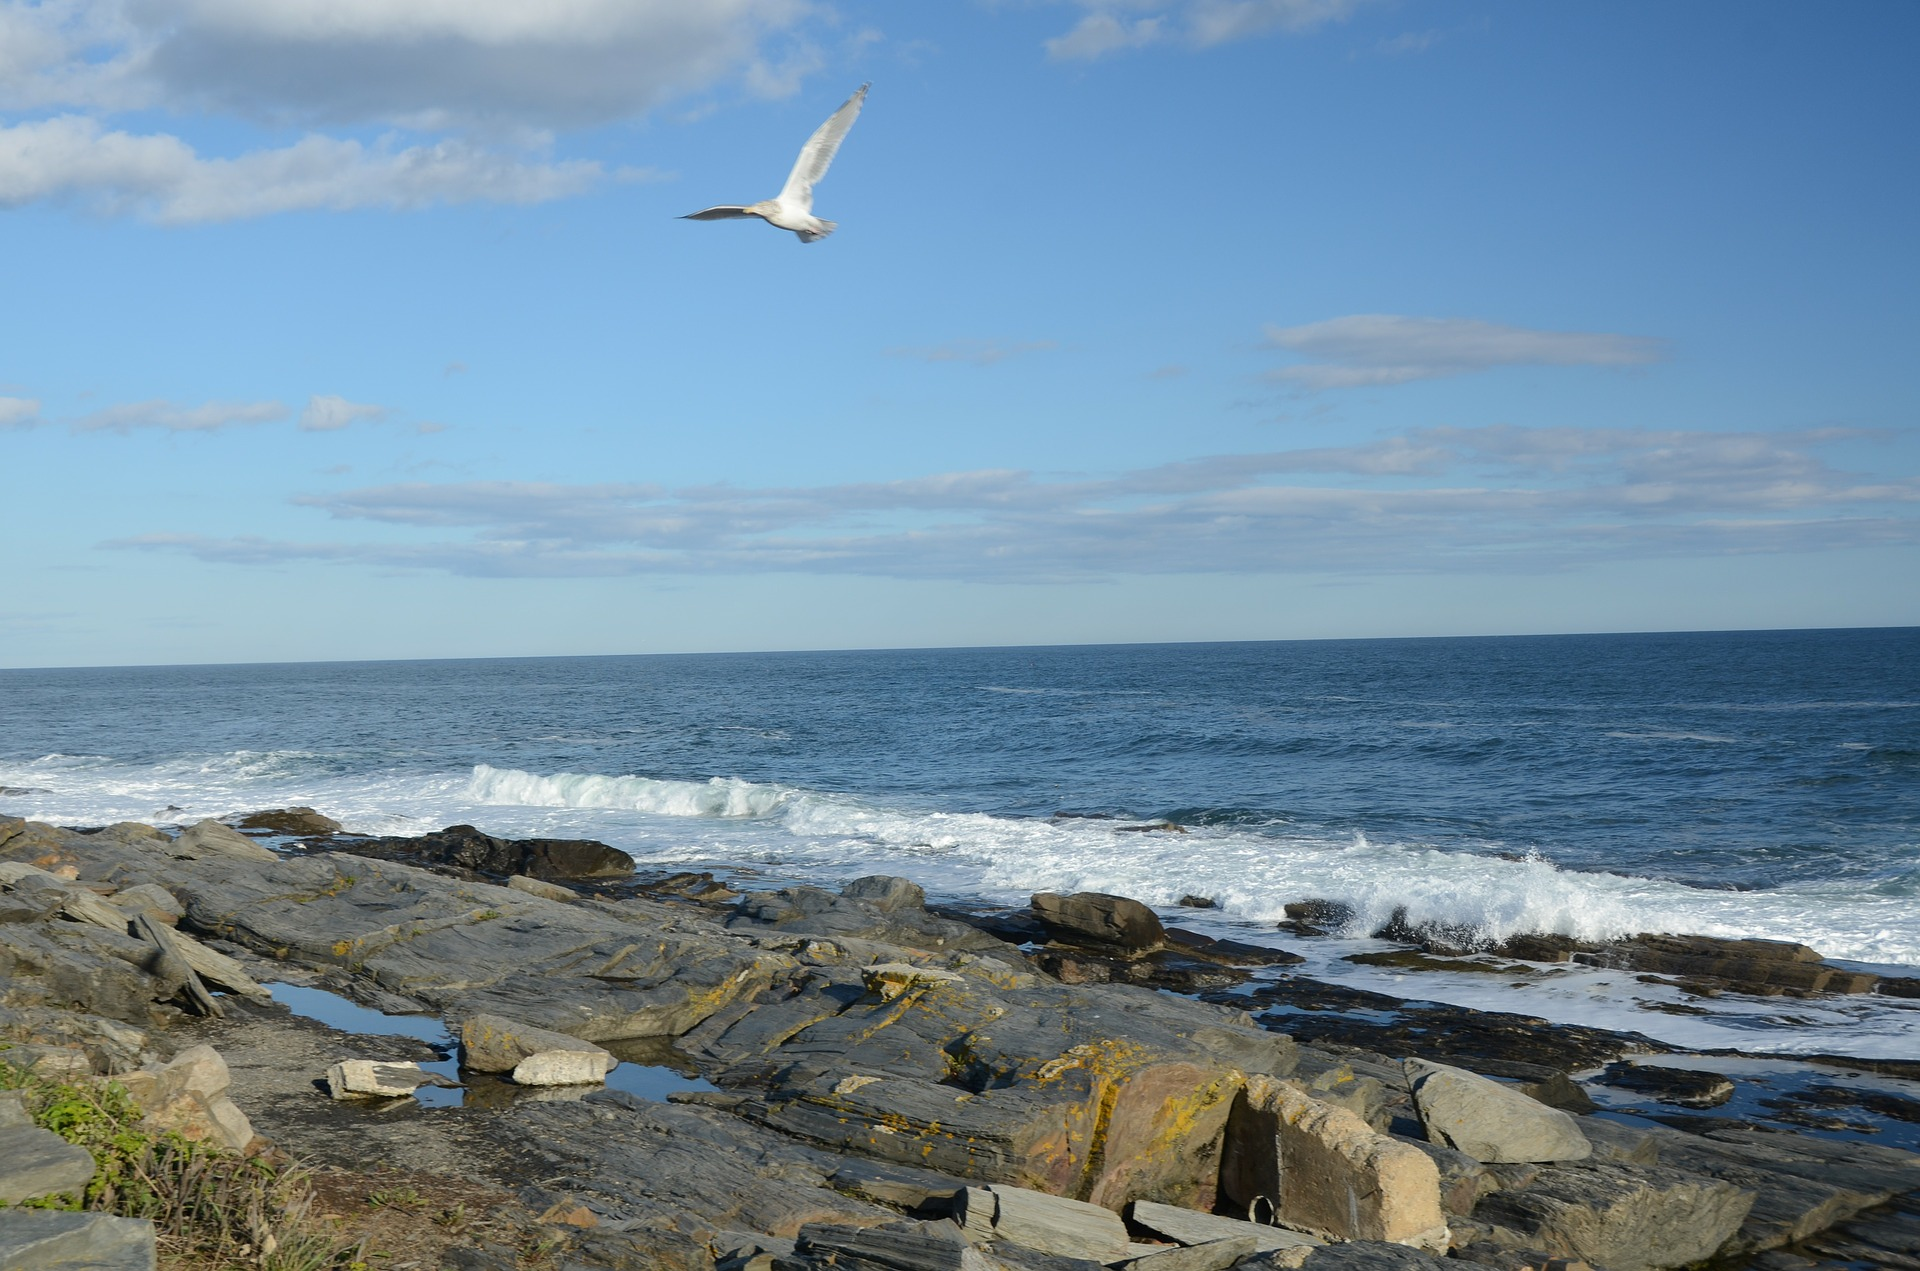 A seagull flies above rugged rocks on the caost